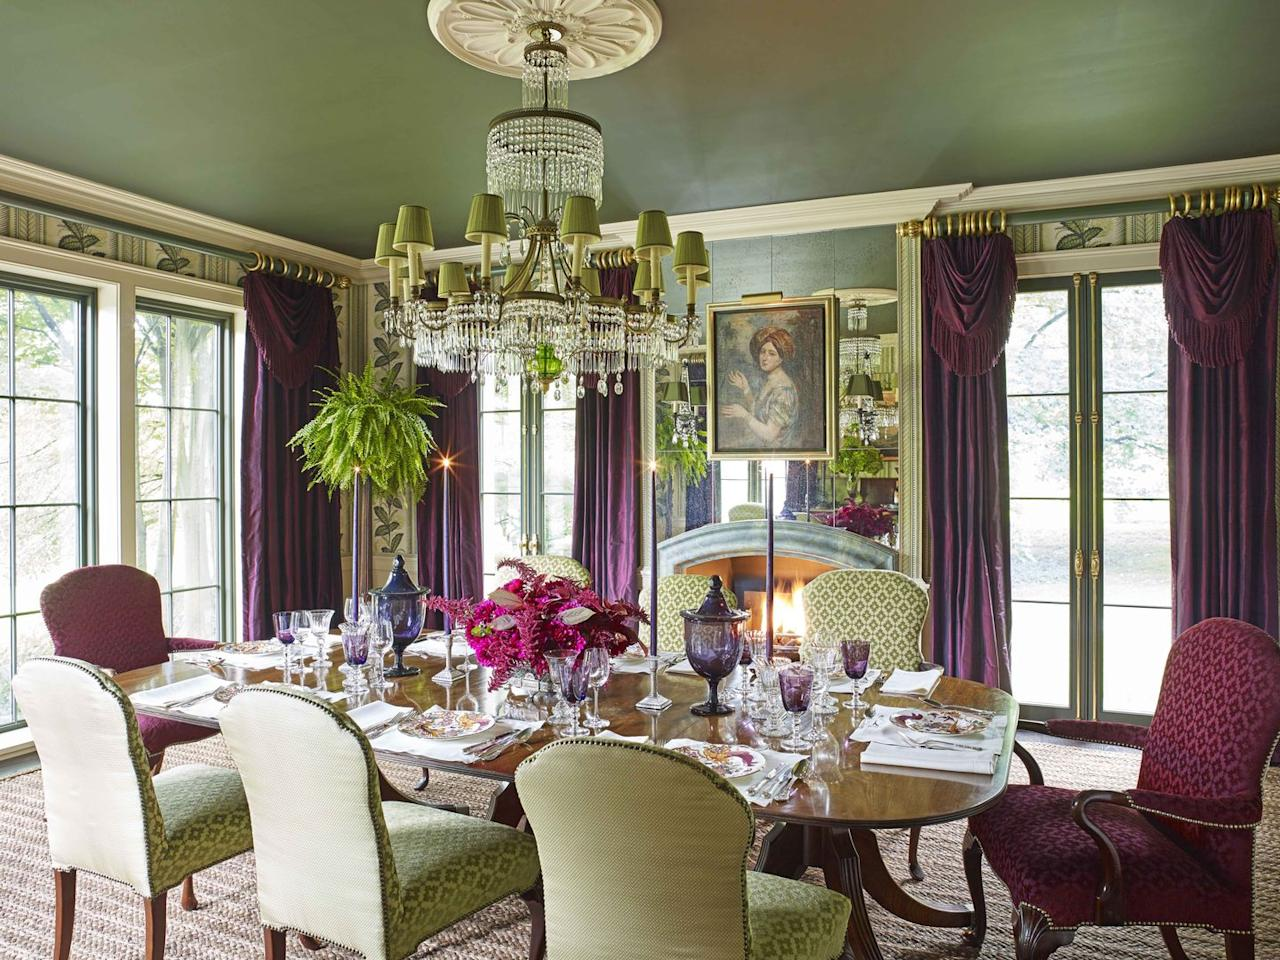 """<p><a href=""""https://www.benjaminmoore.com/en-us"""" target=""""_blank"""">Benjamin Moore's</a> Backwoods covers the dining room ceiling of  a Pennsylvania farmhouse designed by <a href=""""https://www.richardkeithlangham.com"""" target=""""_blank"""">Richard Keith Langham</a>, creating a cozy atmosphere. The curtains, decked out with bullion trim, are in a plum-colored <a href=""""https://www.fschumacher.com"""" target=""""_blank"""">Schumacher</a> silk. </p>"""